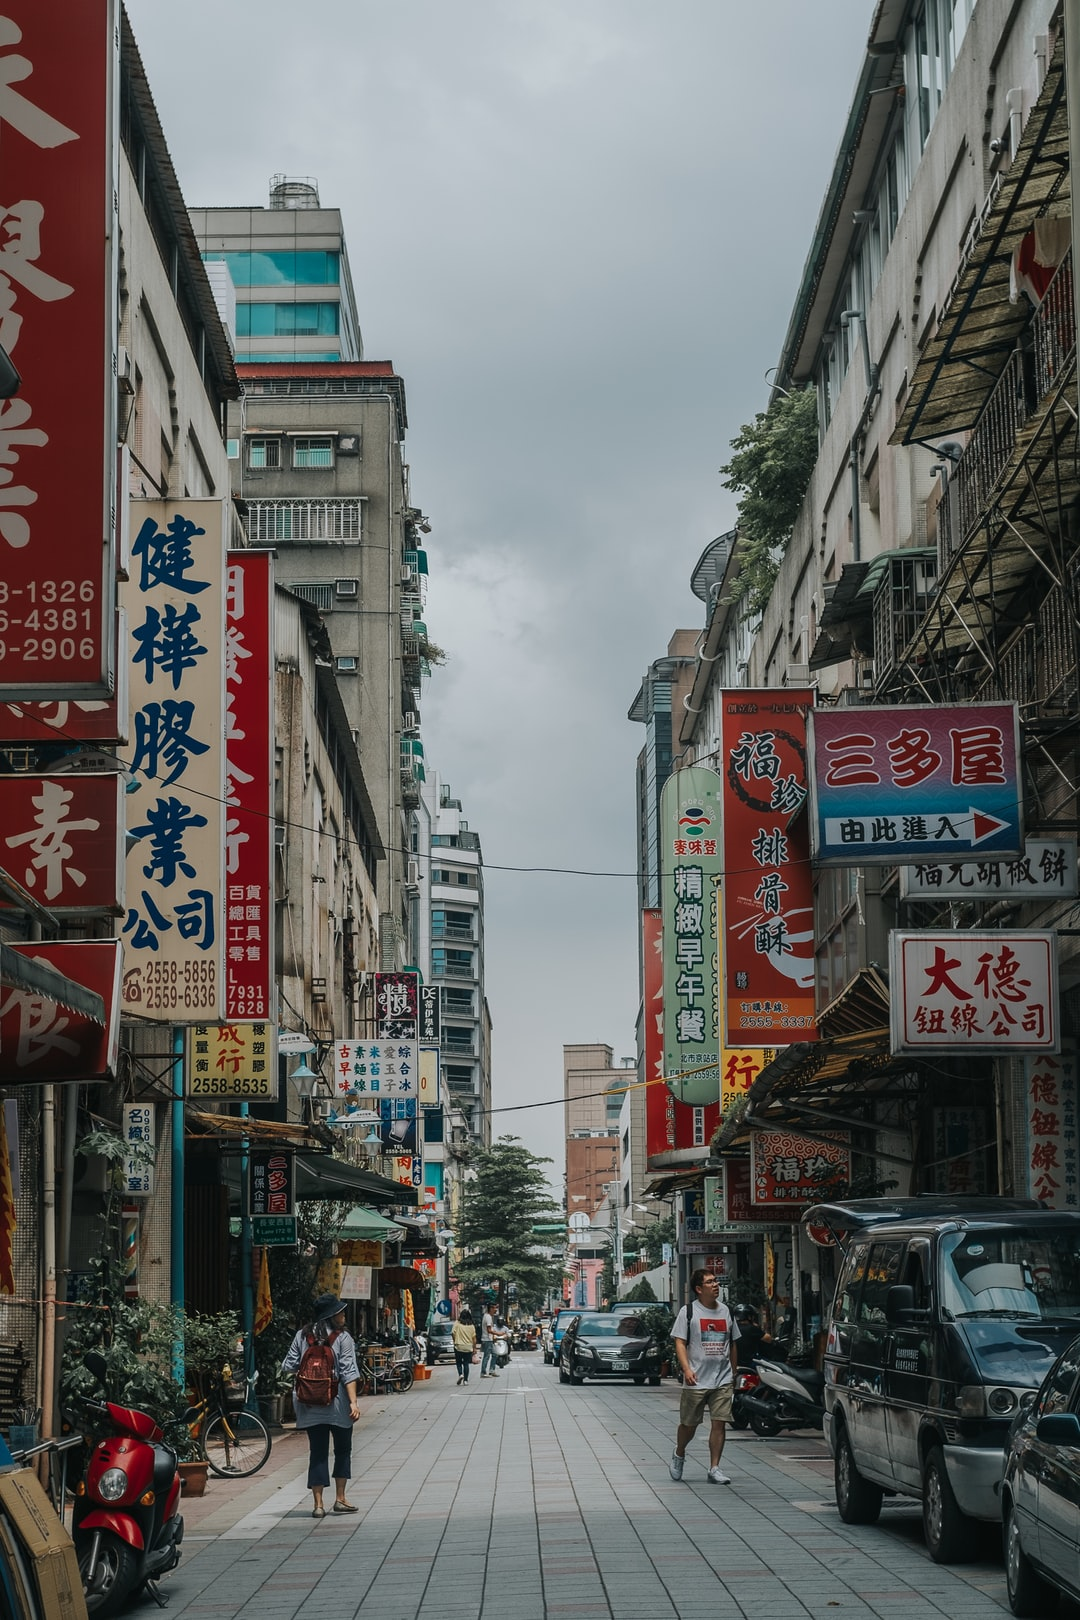 Sort of a short series. Had a recent trip to Taipei, and spent a lot of time walking around. I've come to find that Taipei is a very interesting city - both culturally and visually.